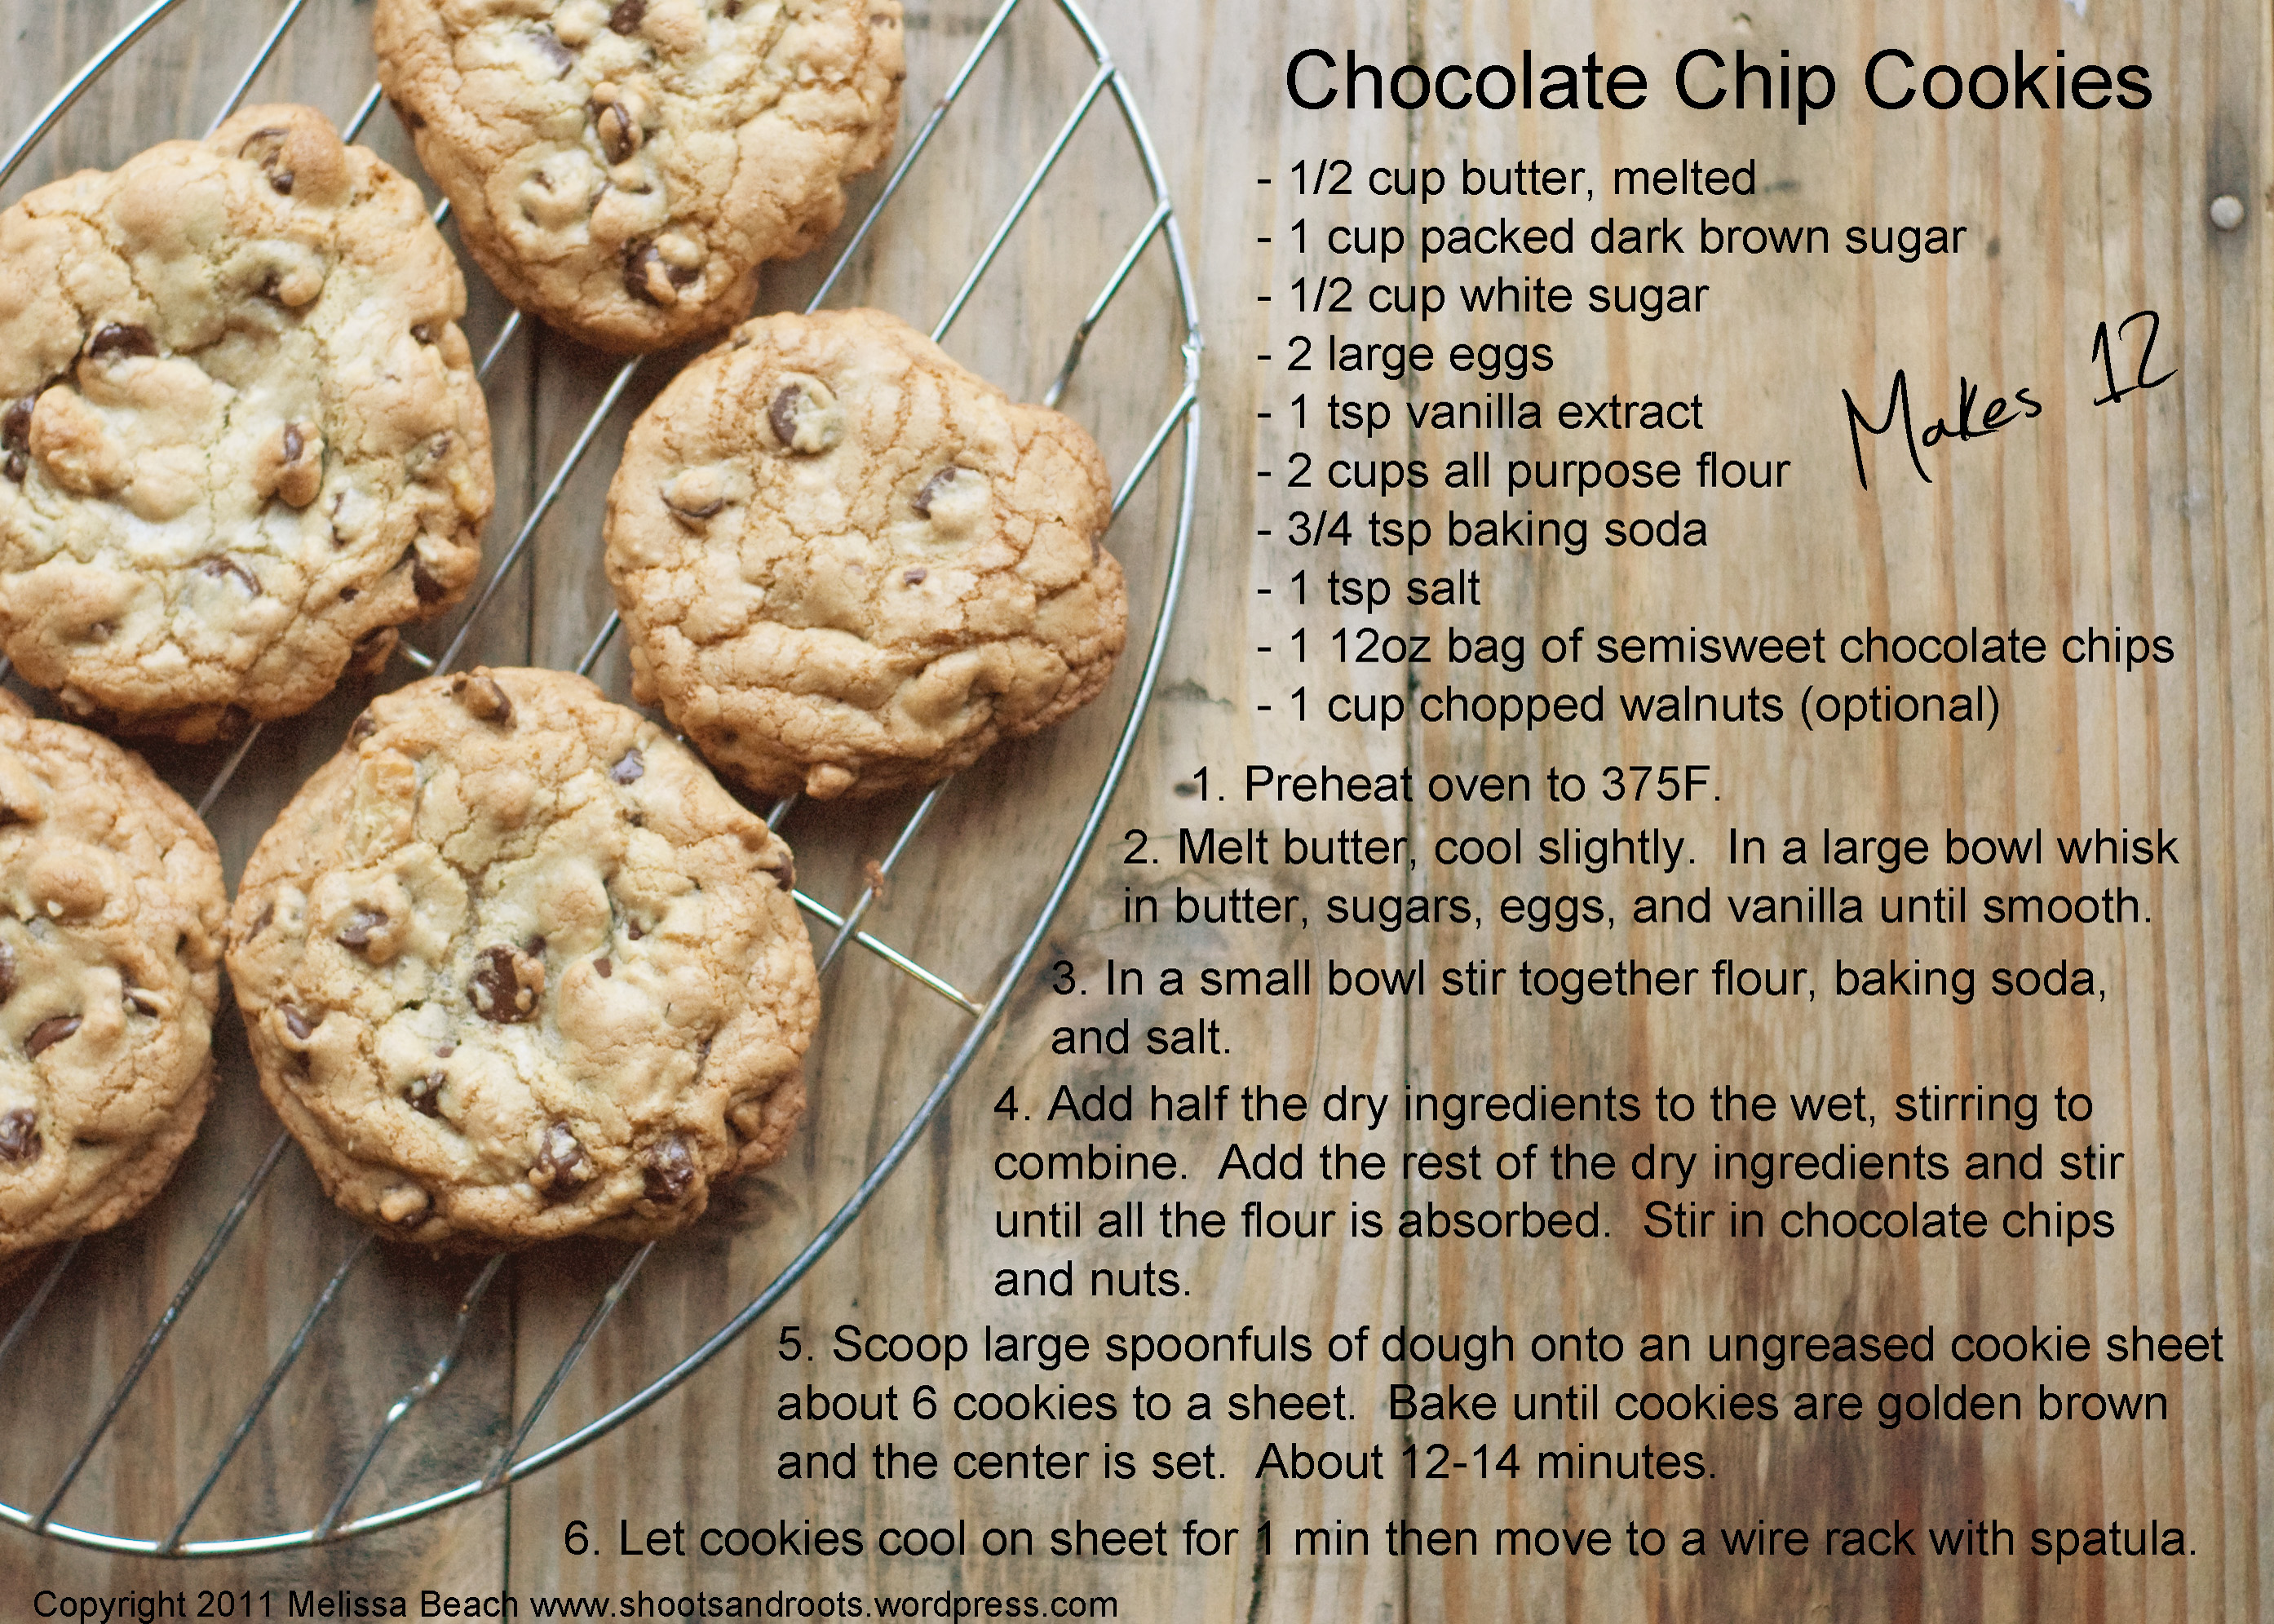 essay on how to make chocolate chip cookies Hey guys, my name is michelle, and today i am going to demonstrate how to  make america's beloved chocolate chip cookies it's christmas time and what  better.